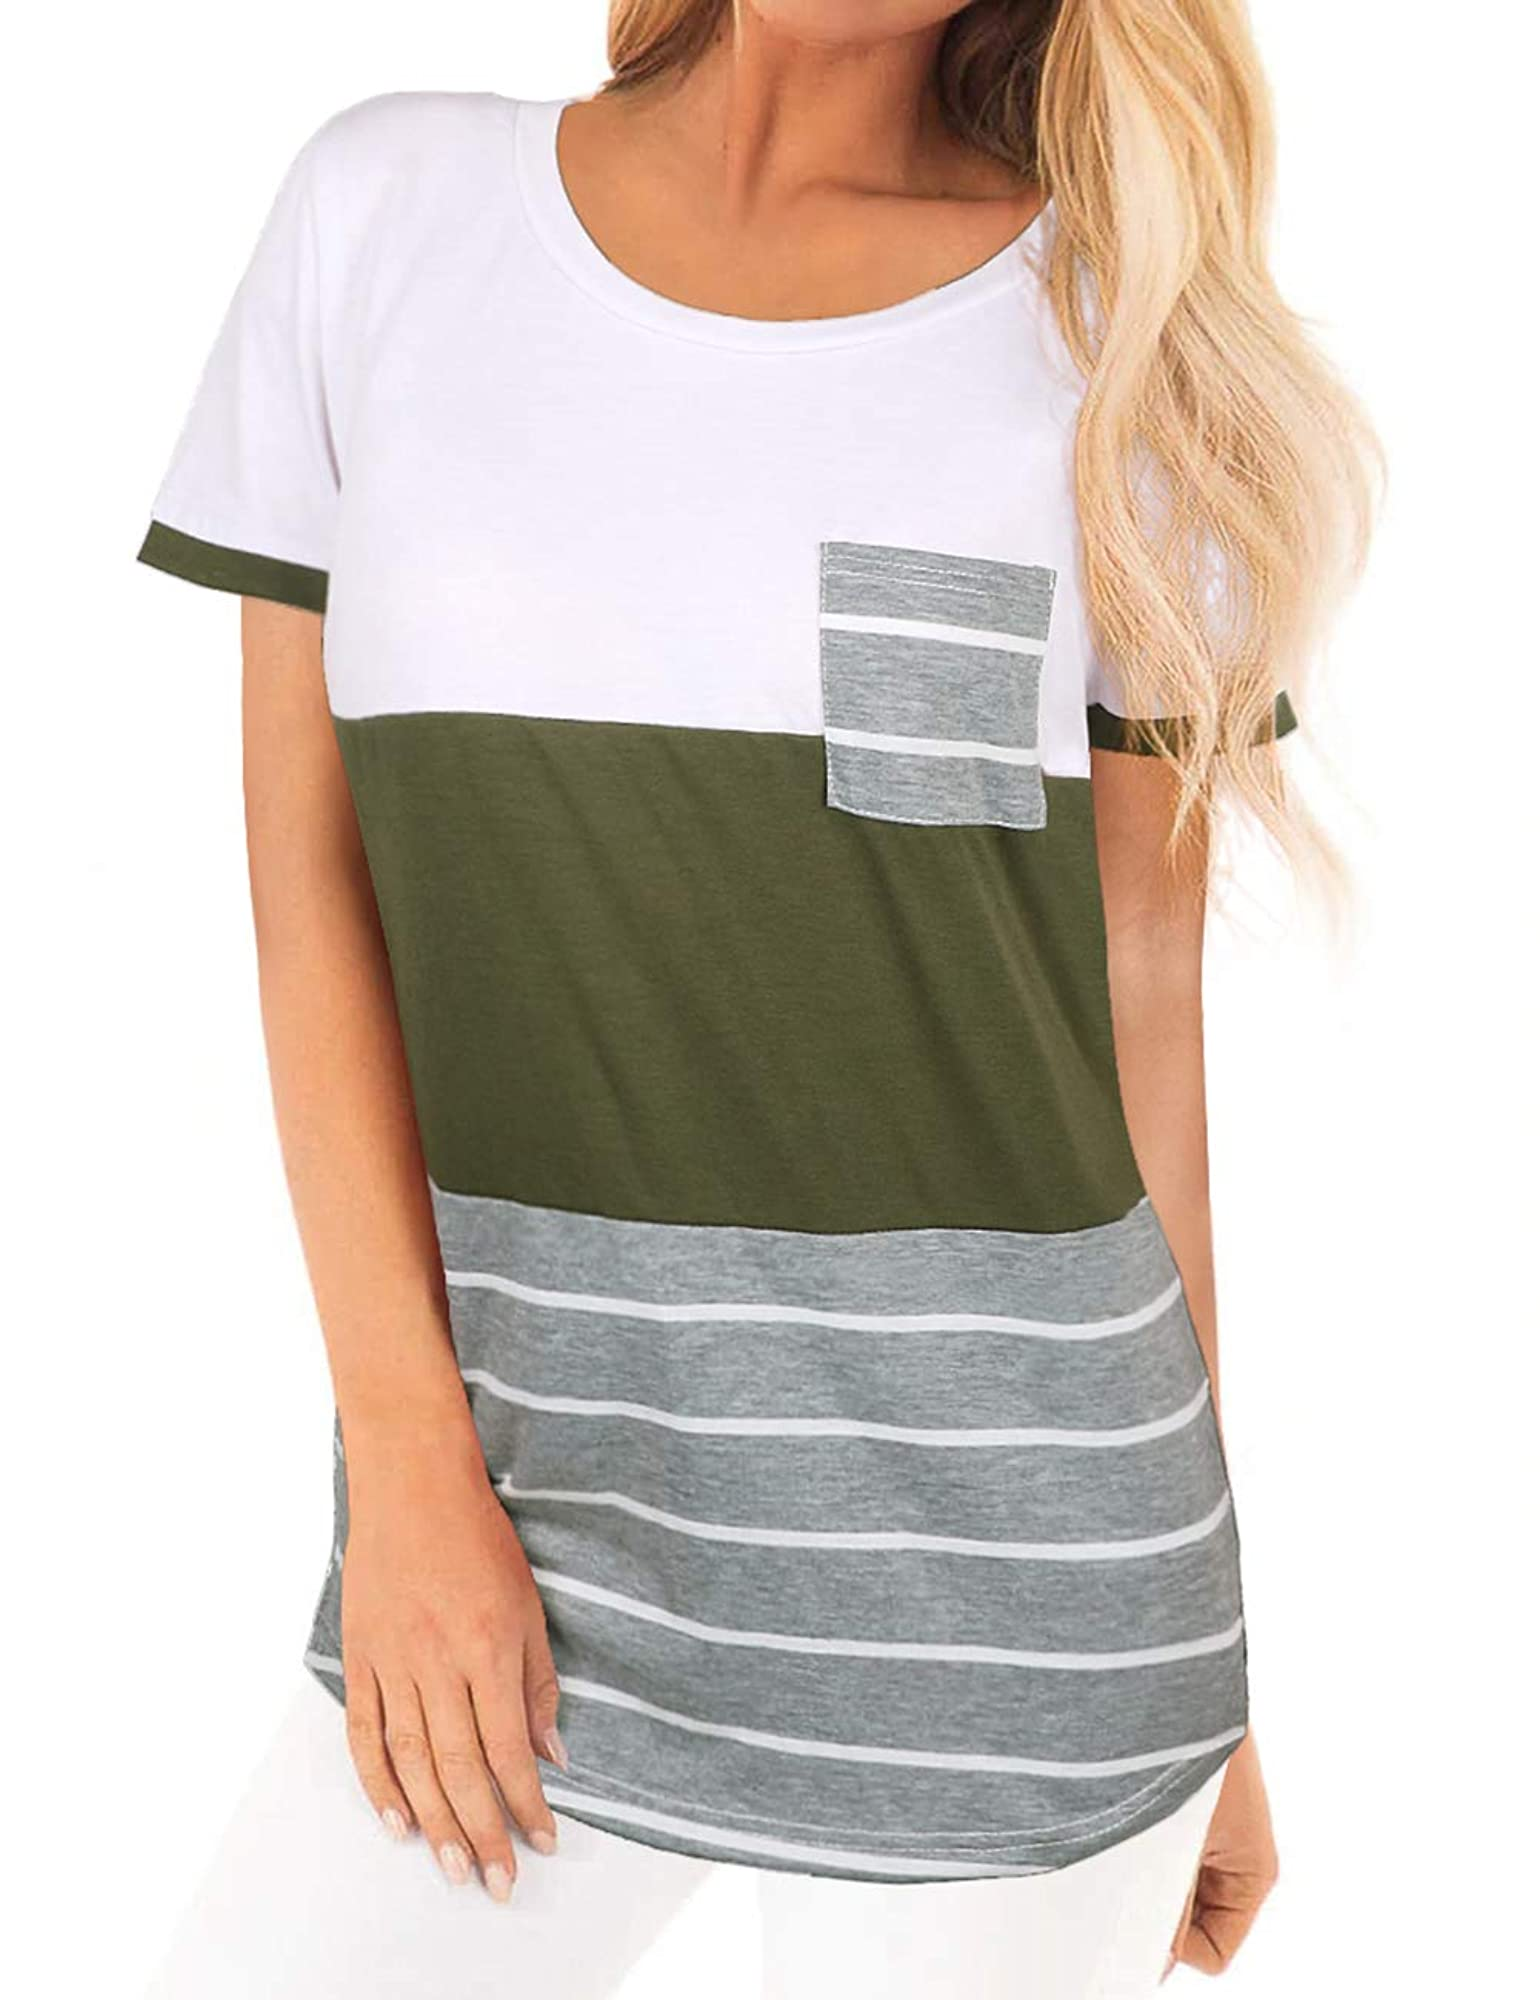 Women's Soft And Stretchable Casual T-Shirt Top